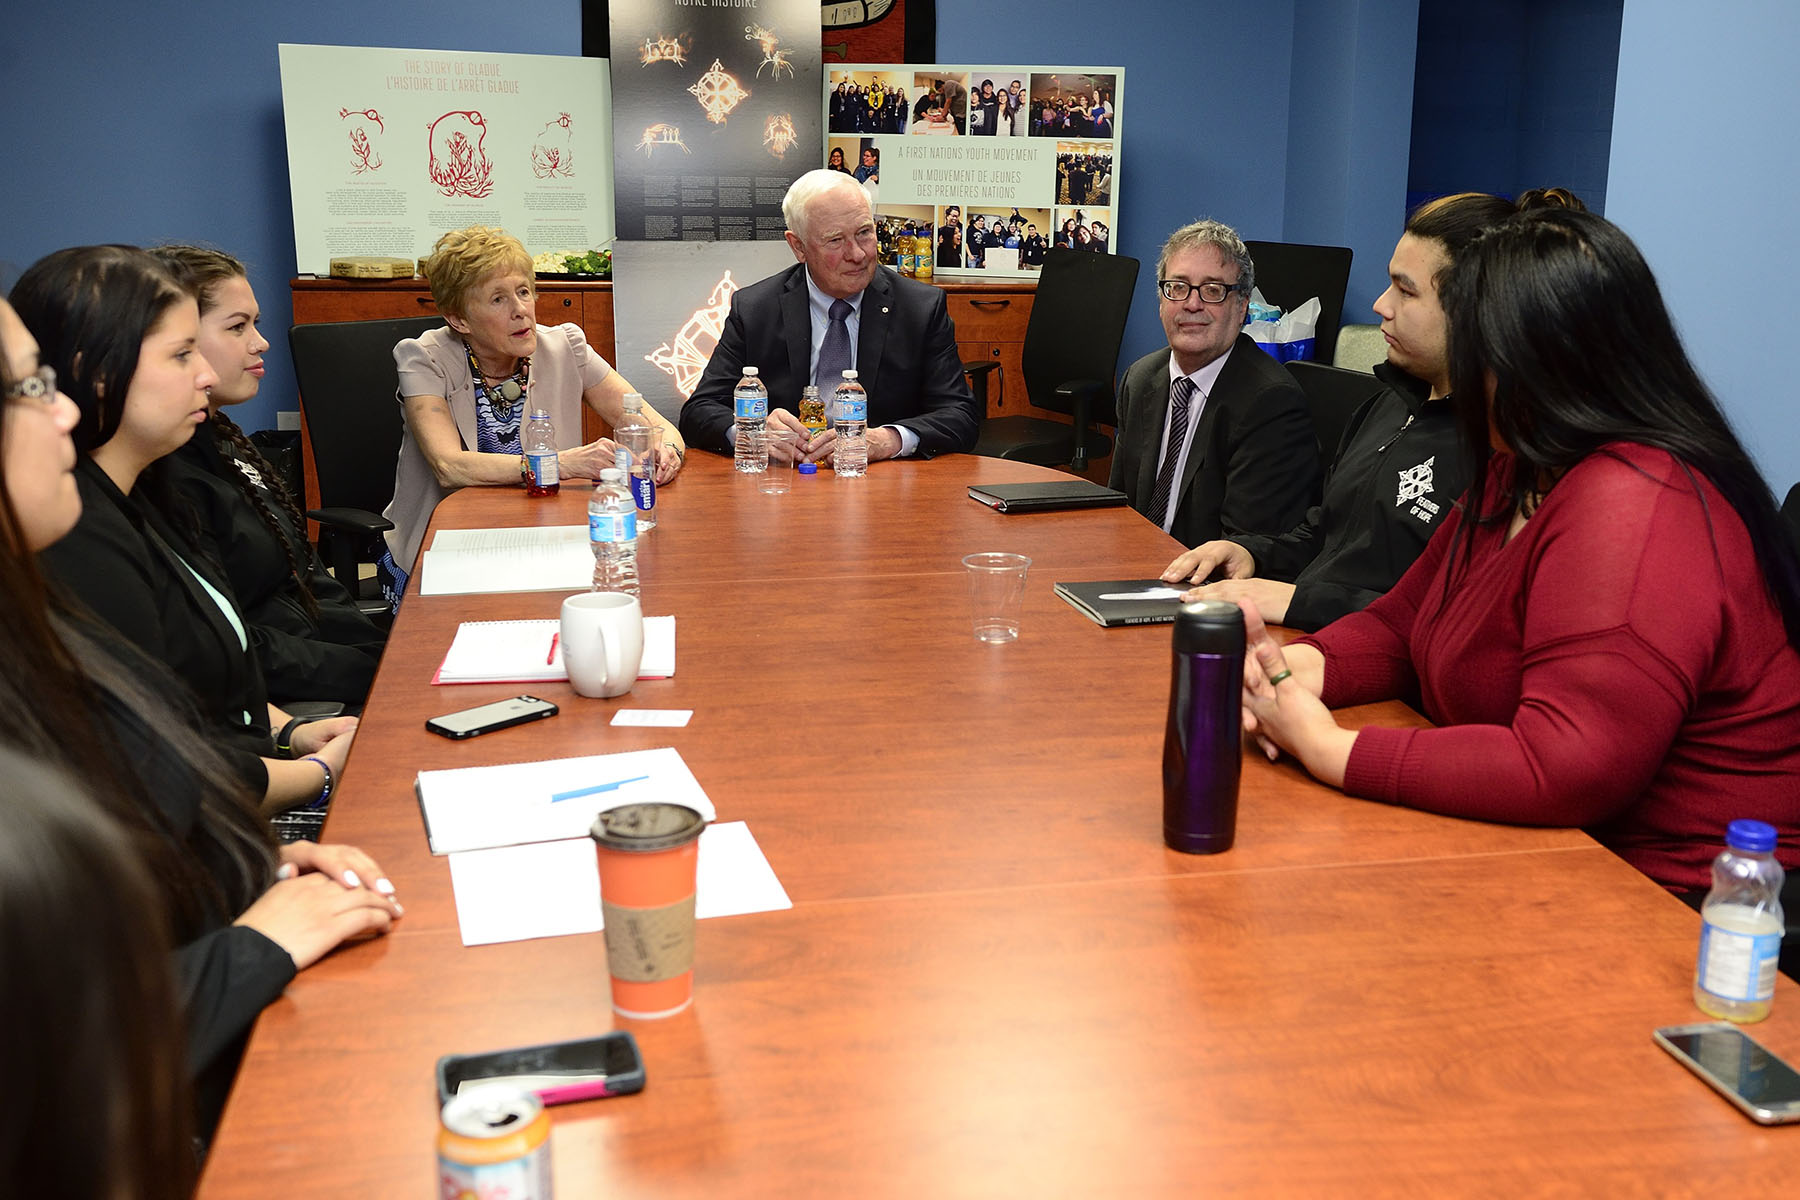 Their Excellencies also met with youth leaders involved with Feathers of Hope to hear about their mobilization efforts to bring Aboriginal young people together to address the key issues identified in Feathers of Hope: a First Nations Youth Action Plan.